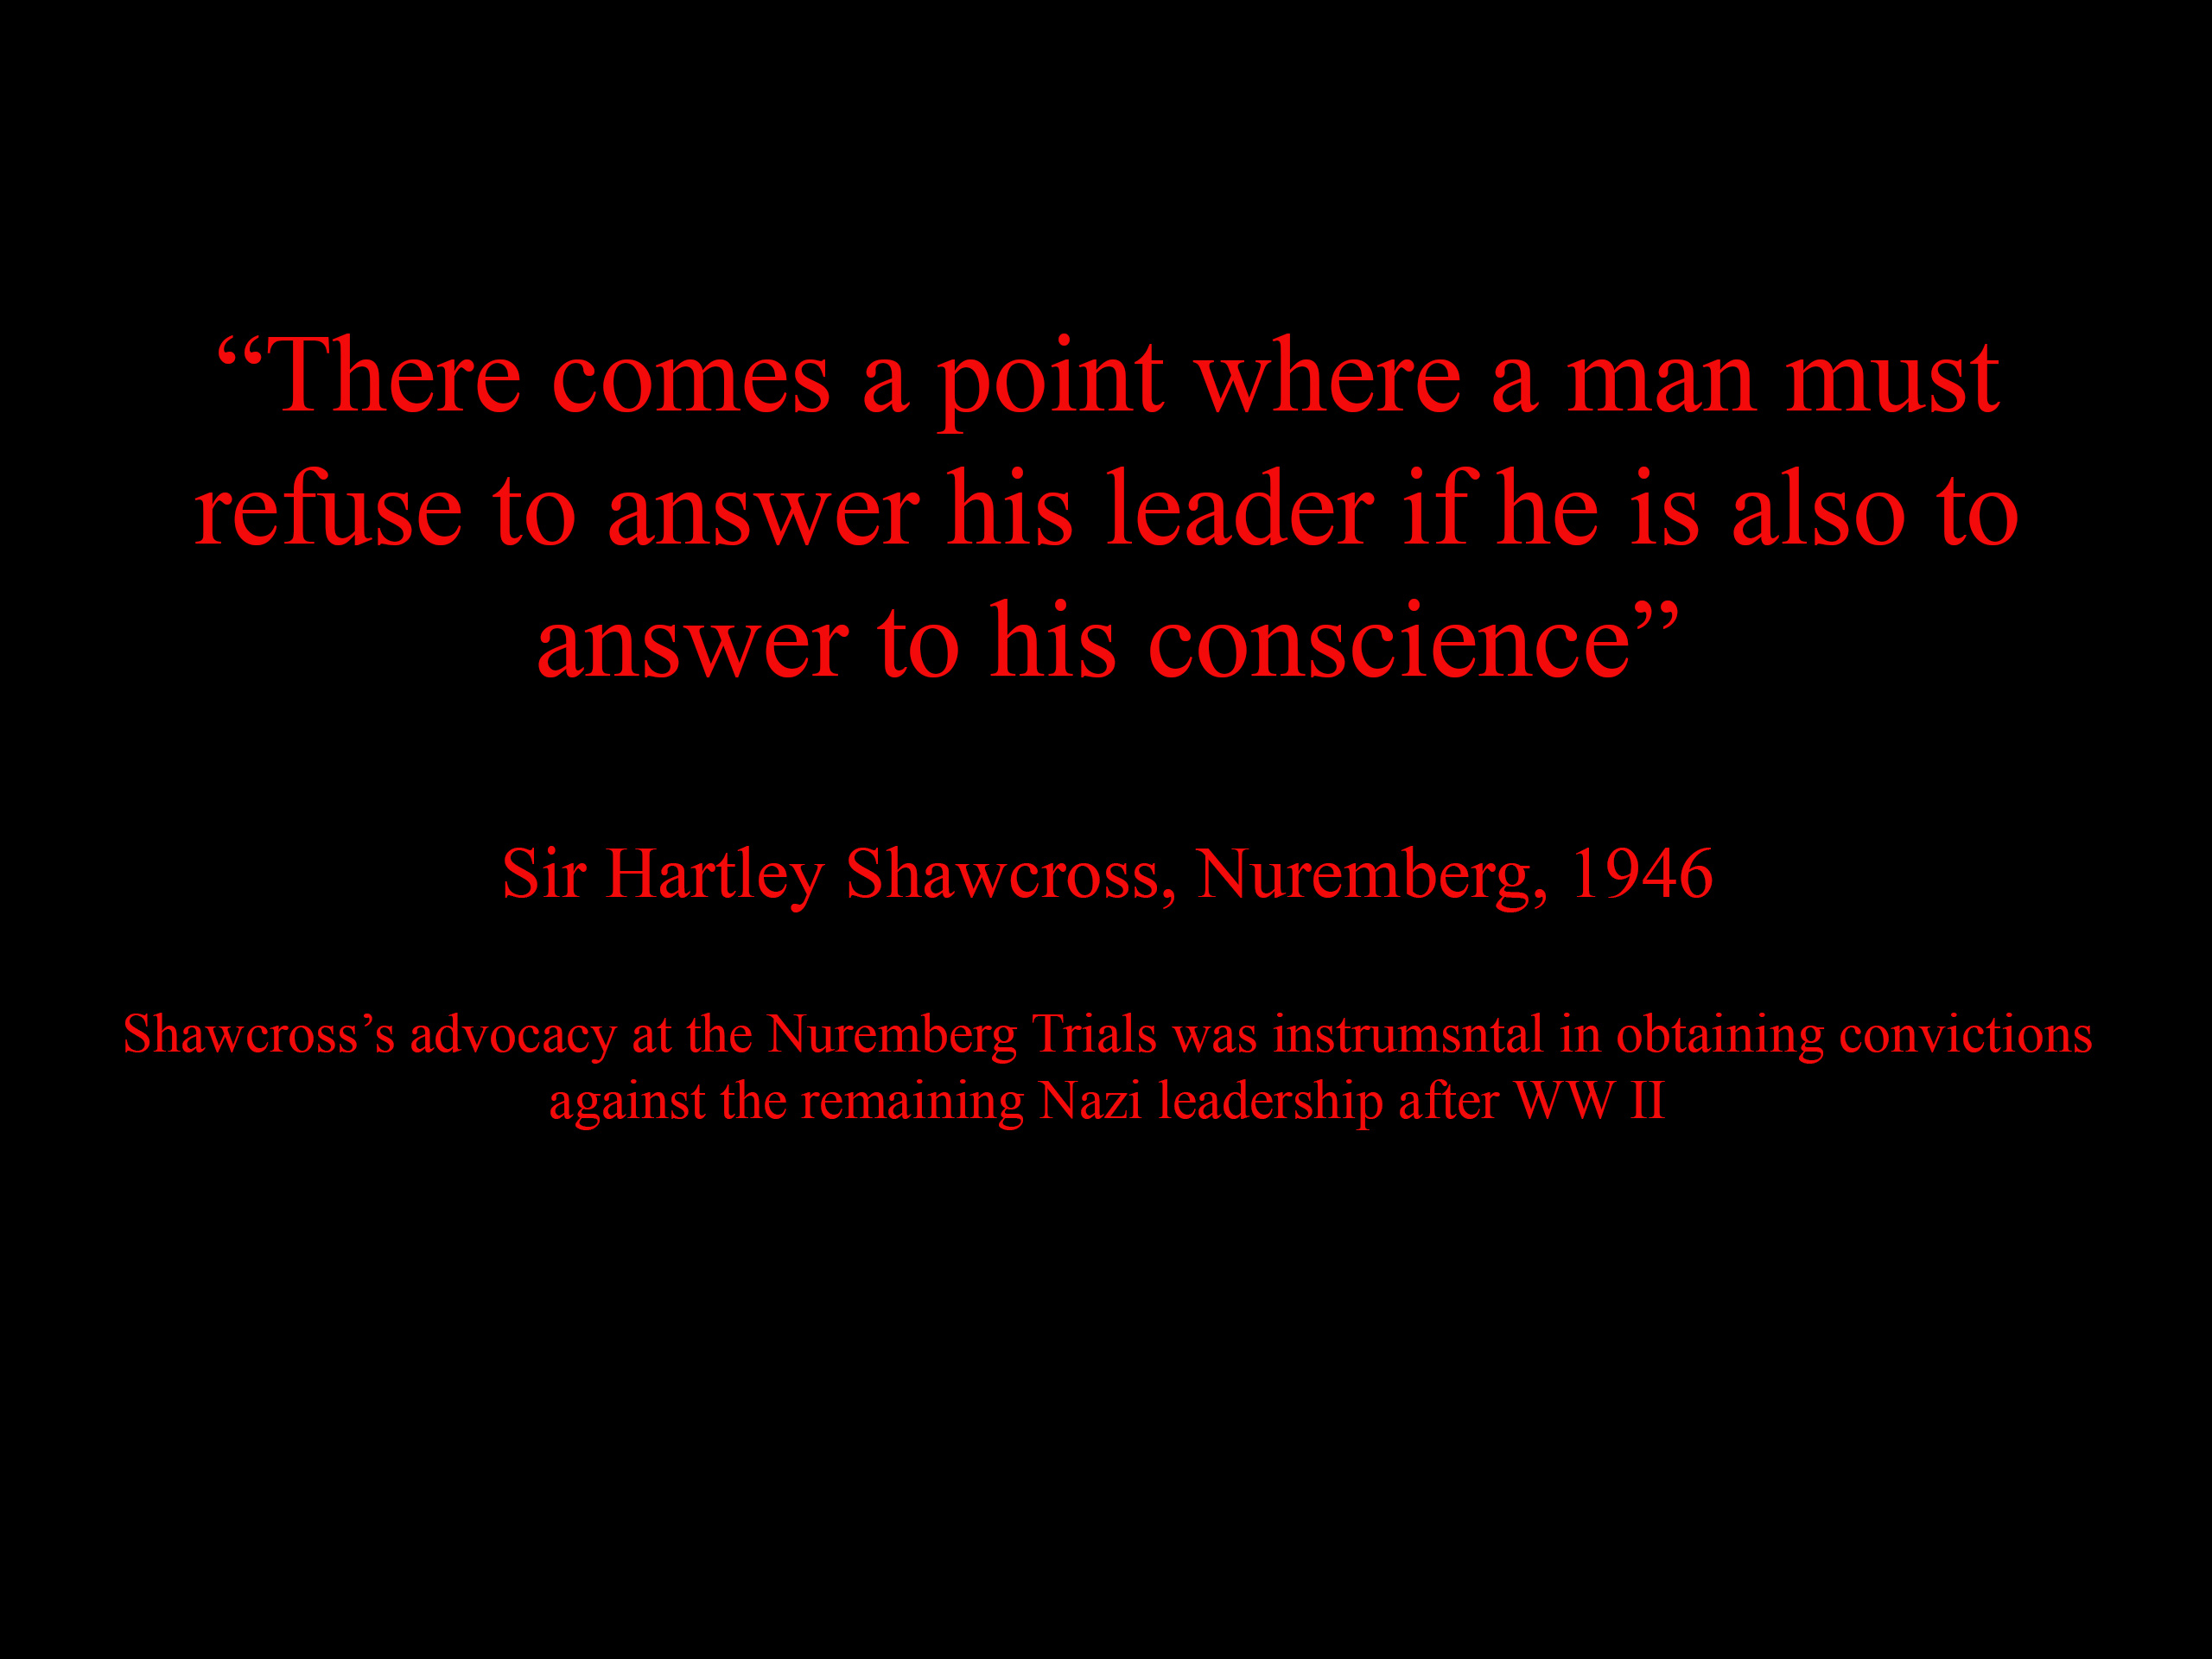 Shawcross-Quote-2560x1920-web